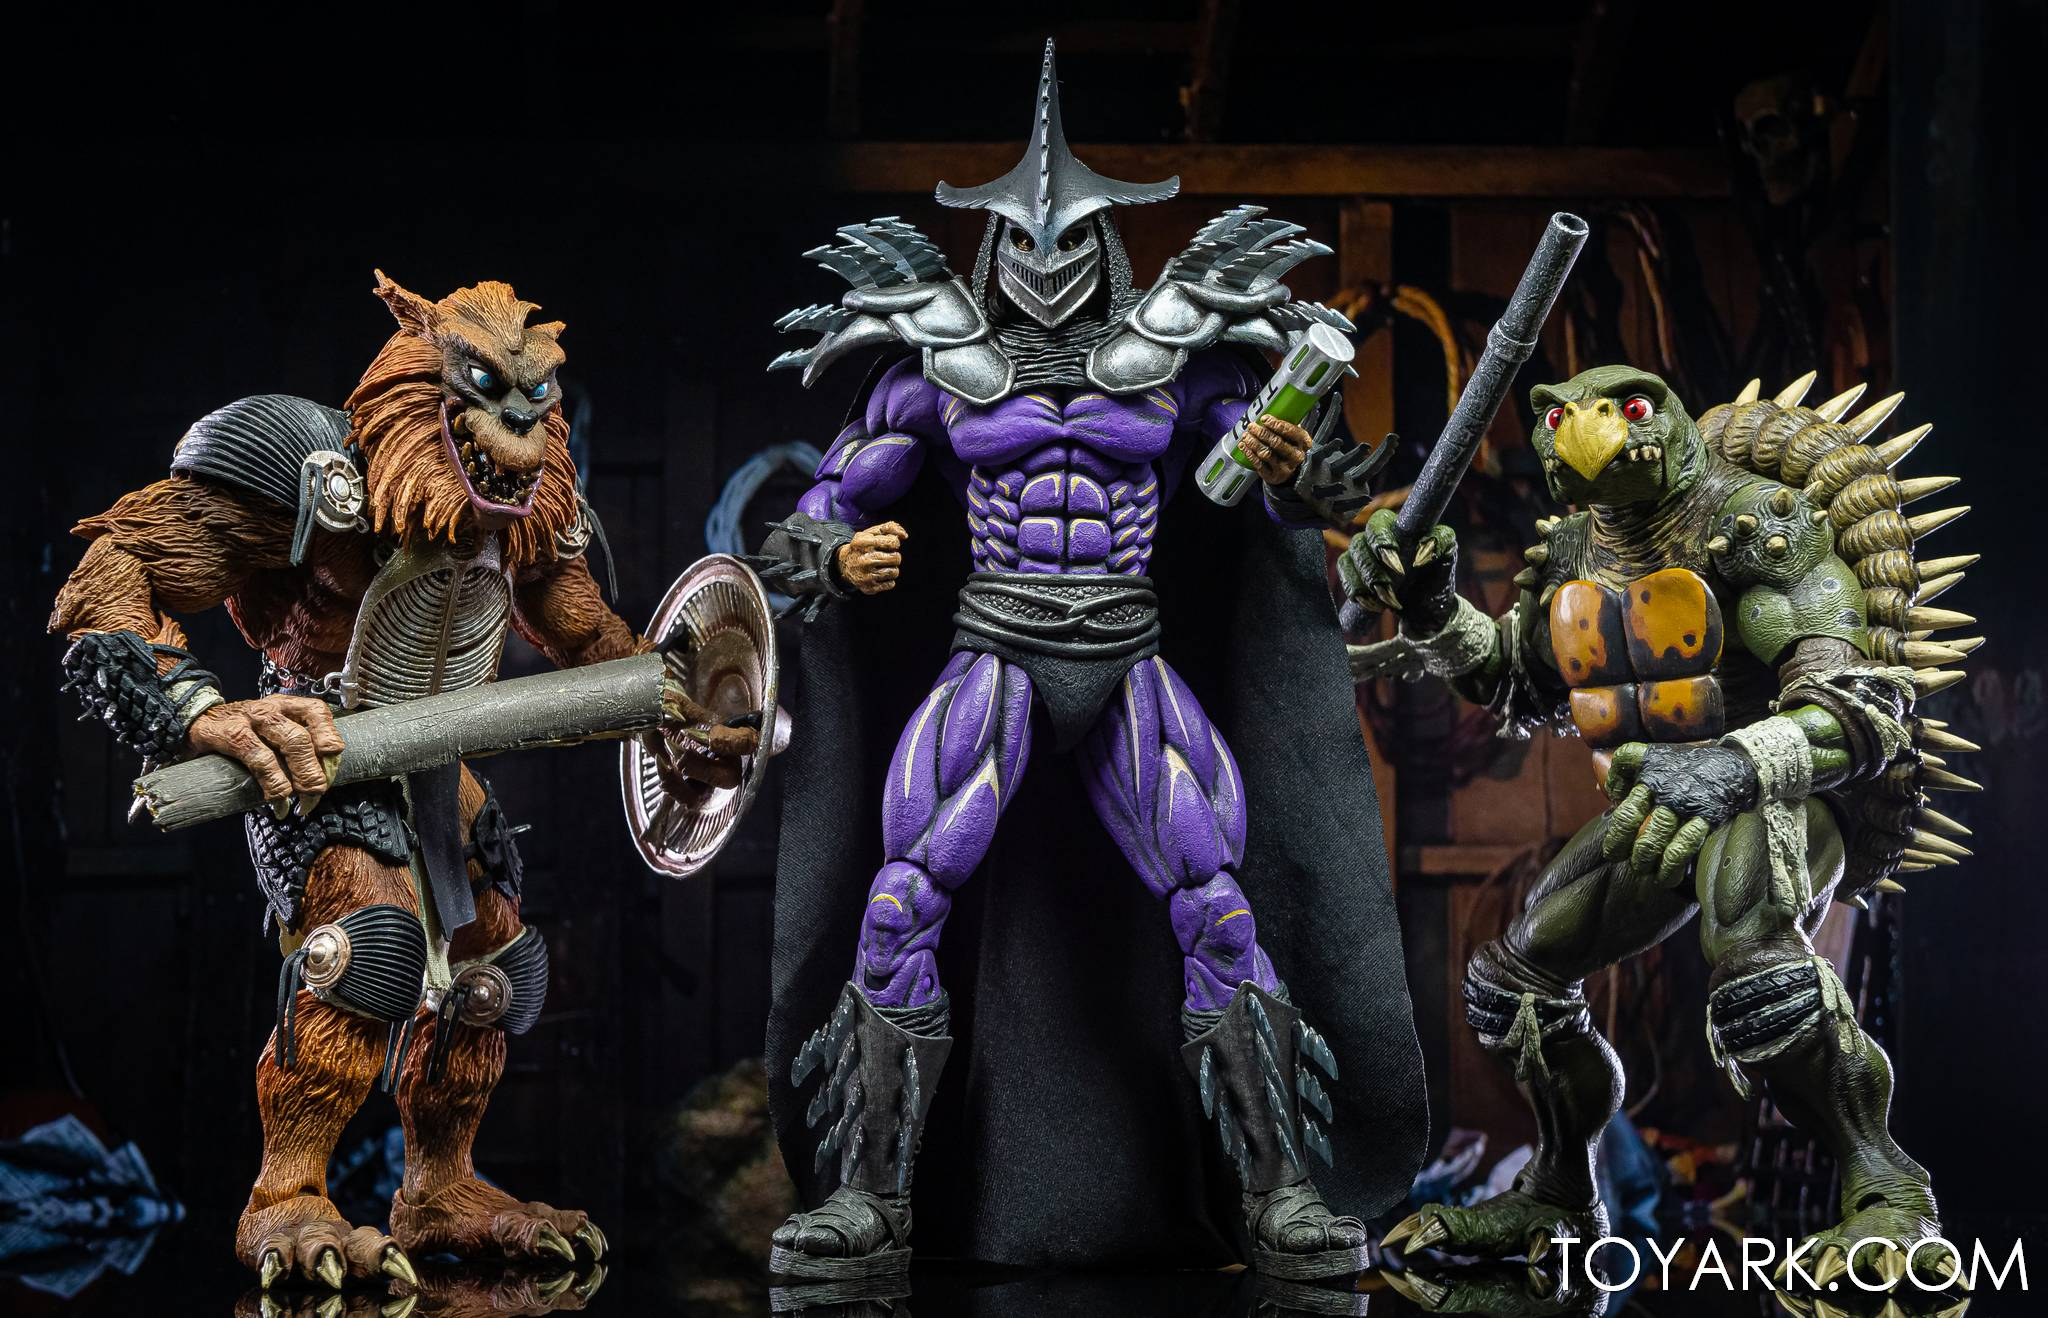 https://news.toyark.com/wp-content/uploads/sites/4/2021/03/NECA-Tokka-and-Rahzar-TMNT-II-032.jpg